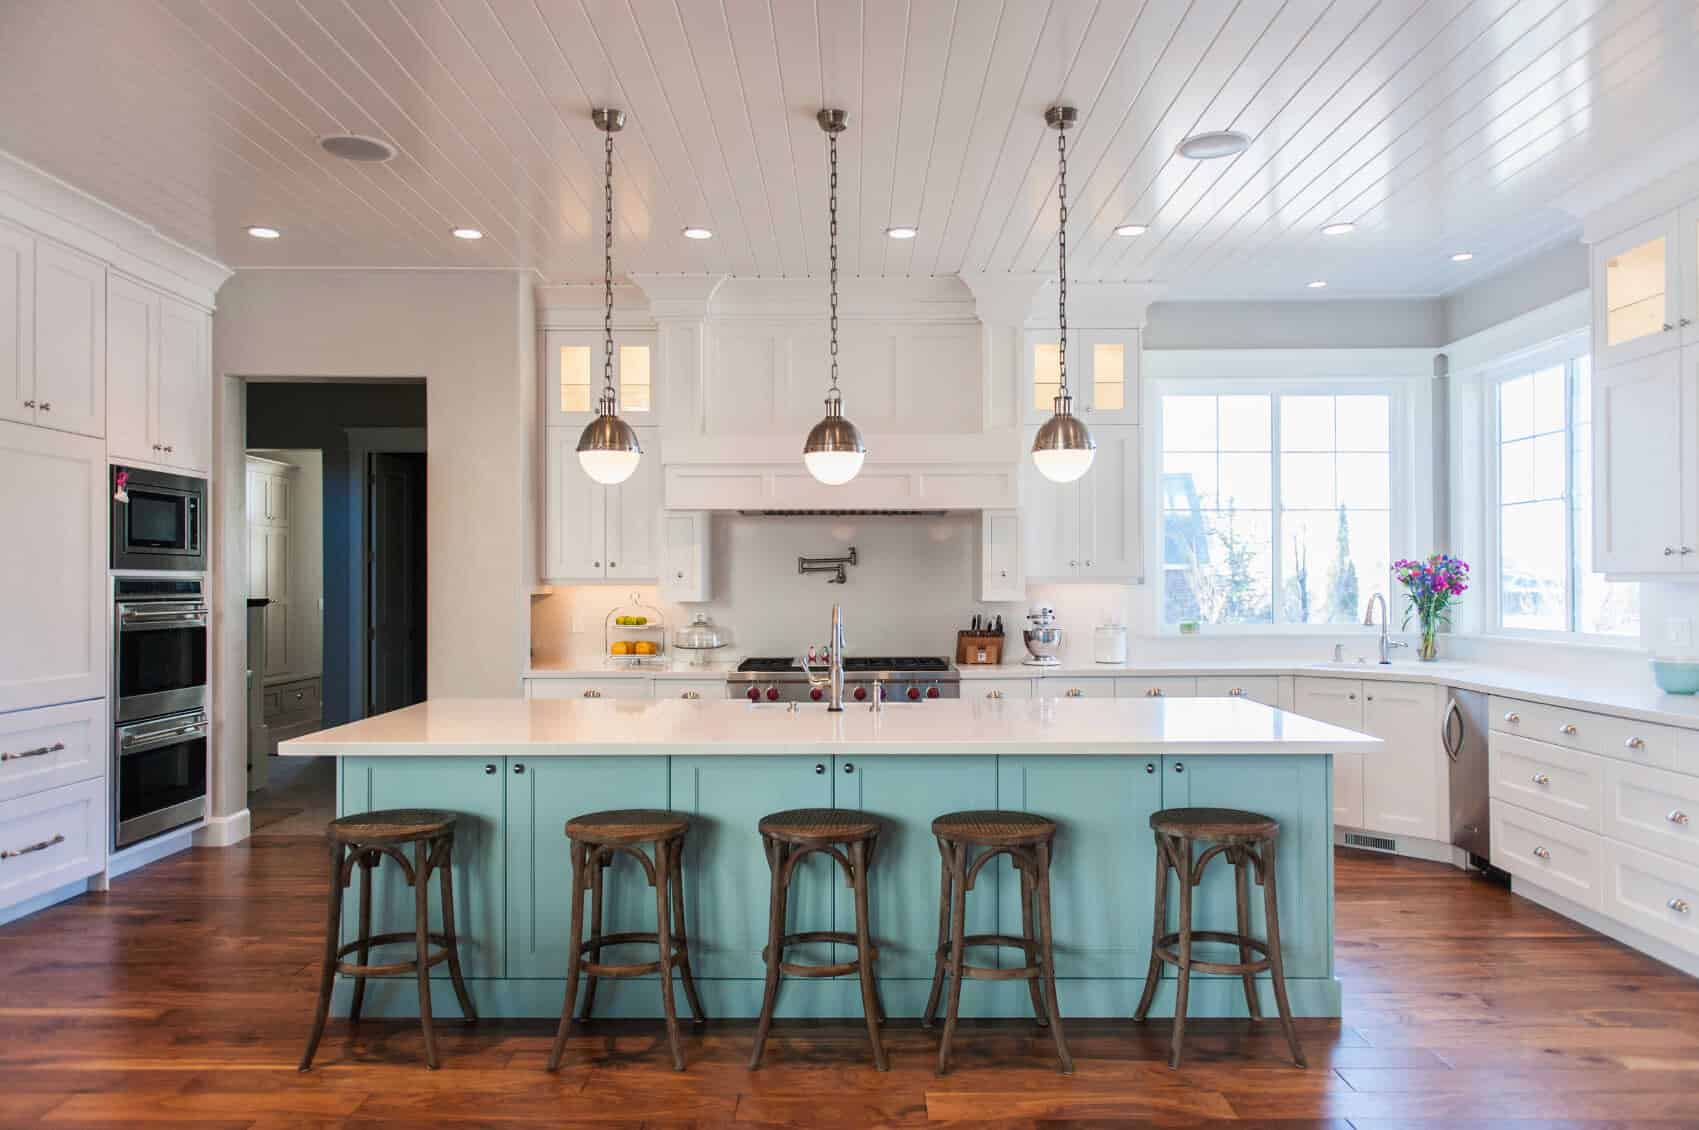 This white kitchen backed by blue center island cabinetry and hardwood flooring will surely attract visitors' eyes. The smooth white counters look perfect. The colors combination fits perfect well with the kitchen style.